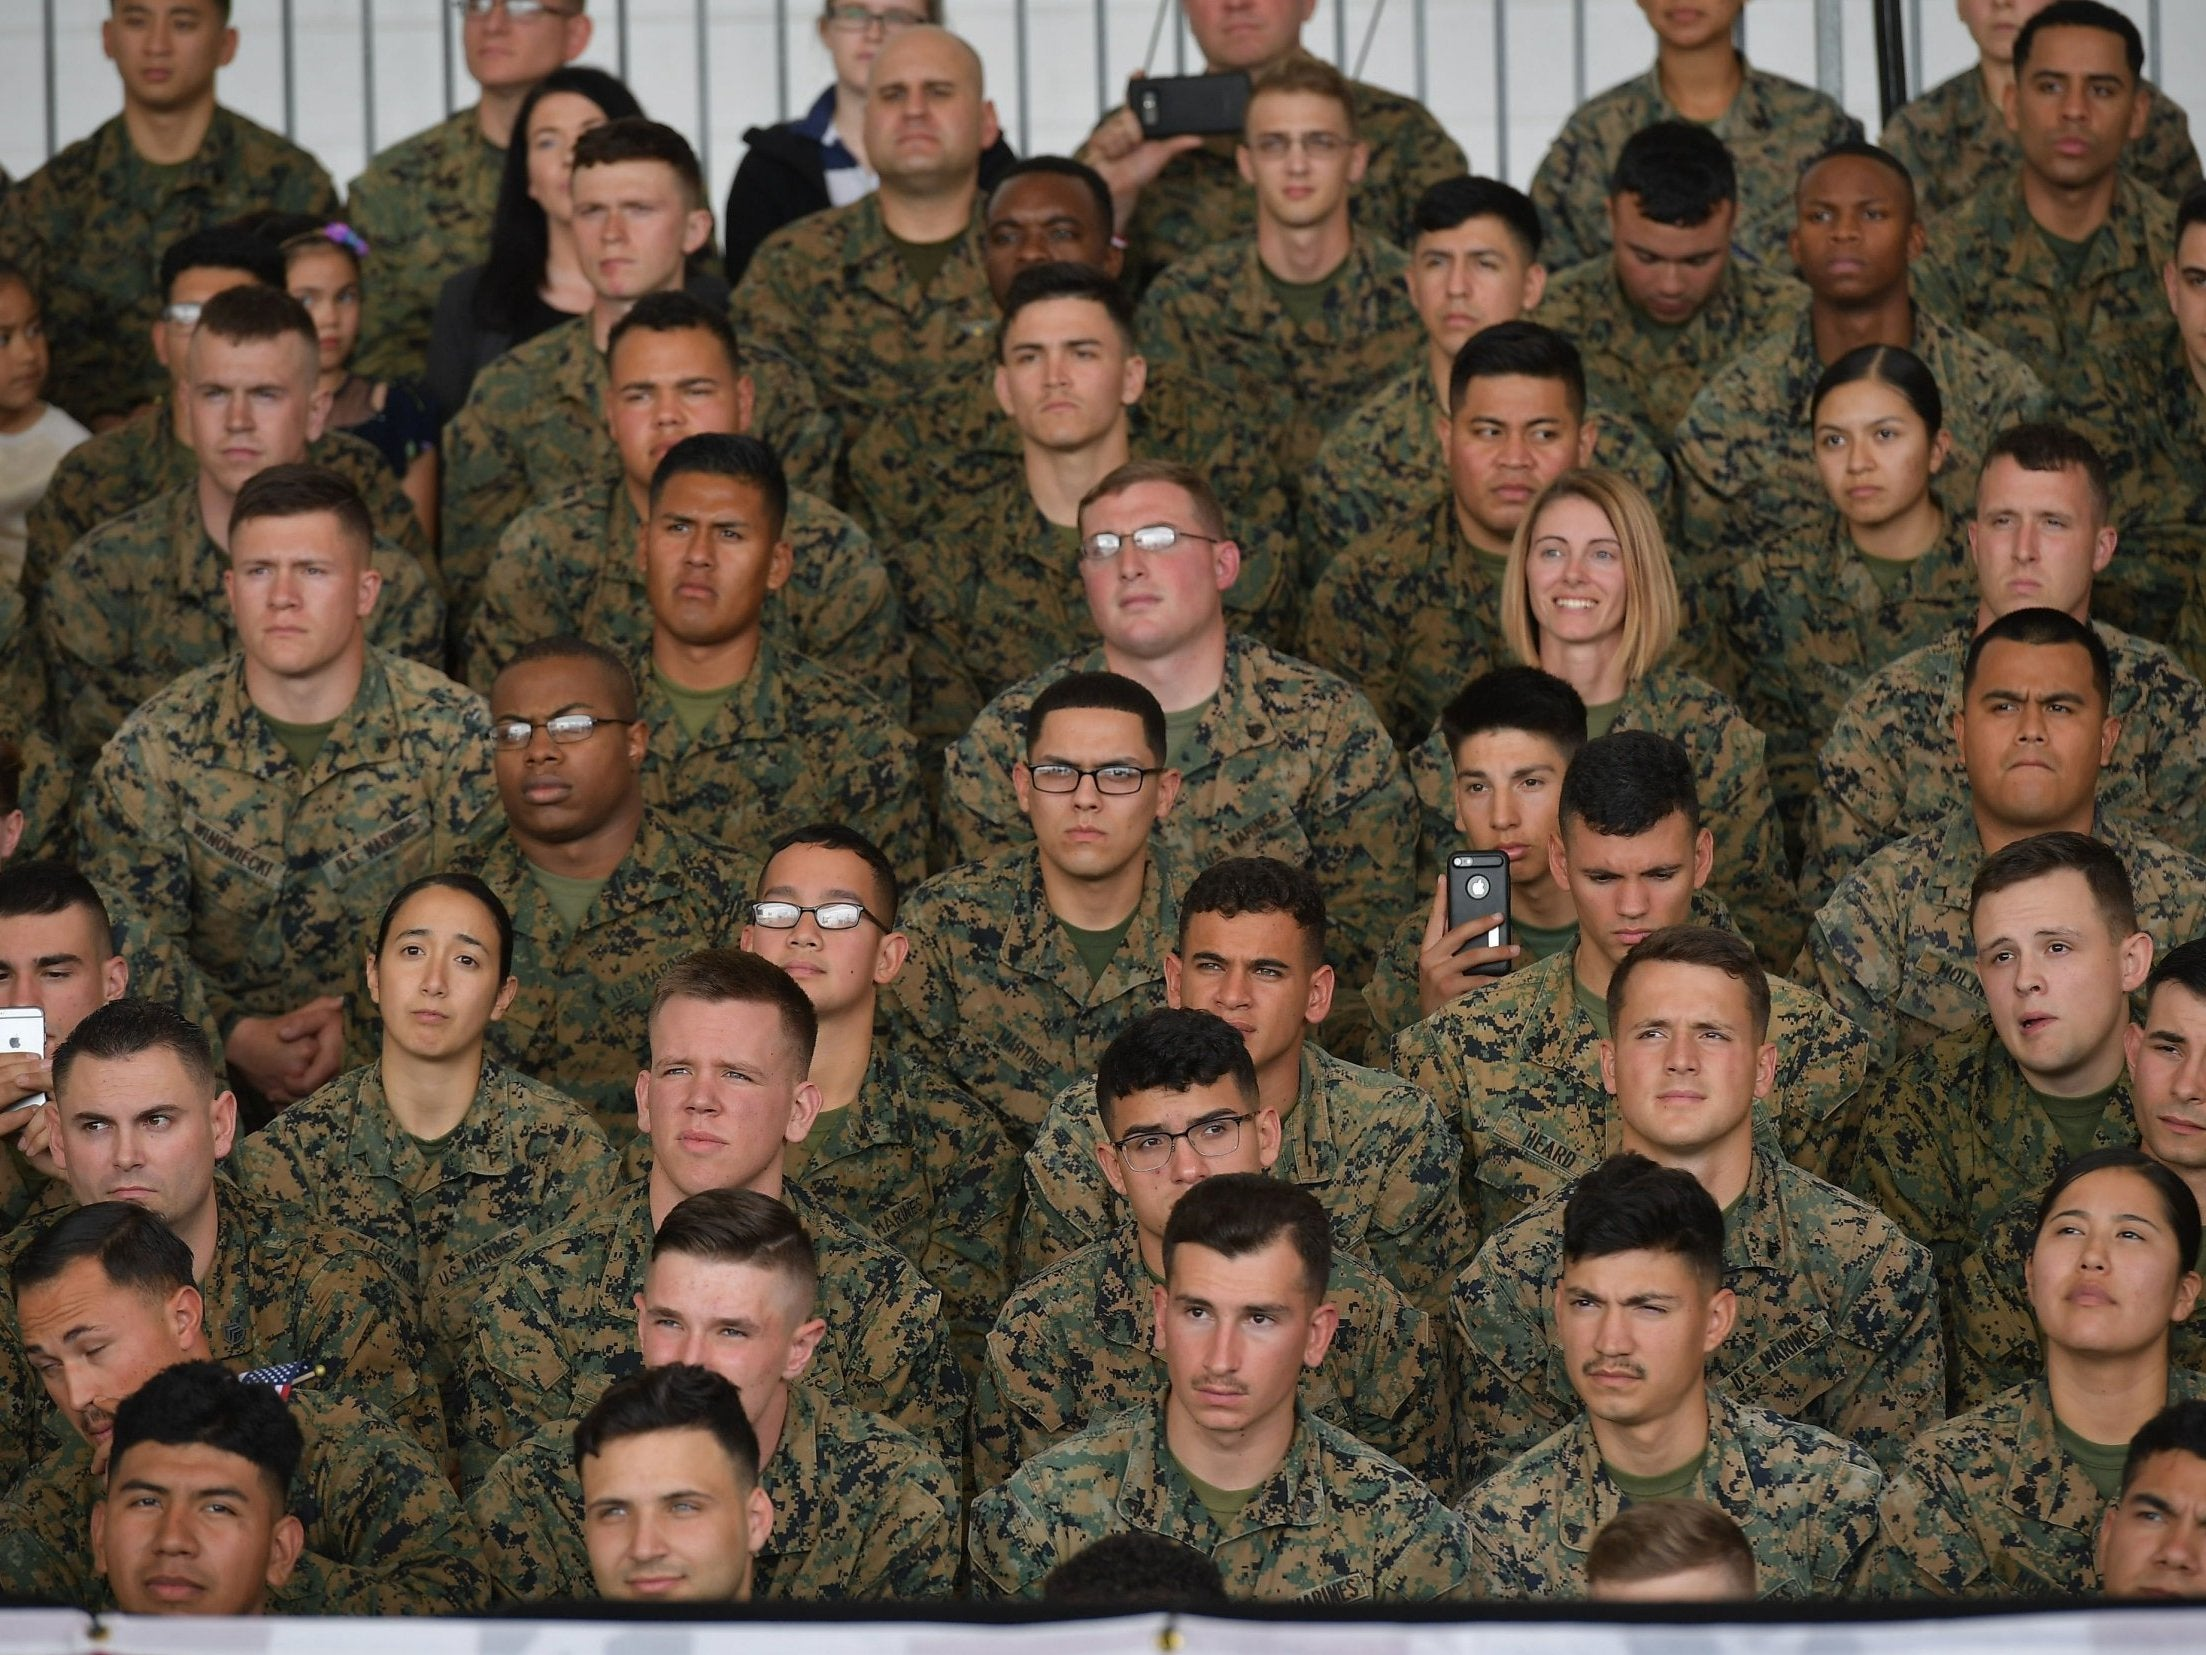 US Marines - latest news, breaking stories and comment - The ...